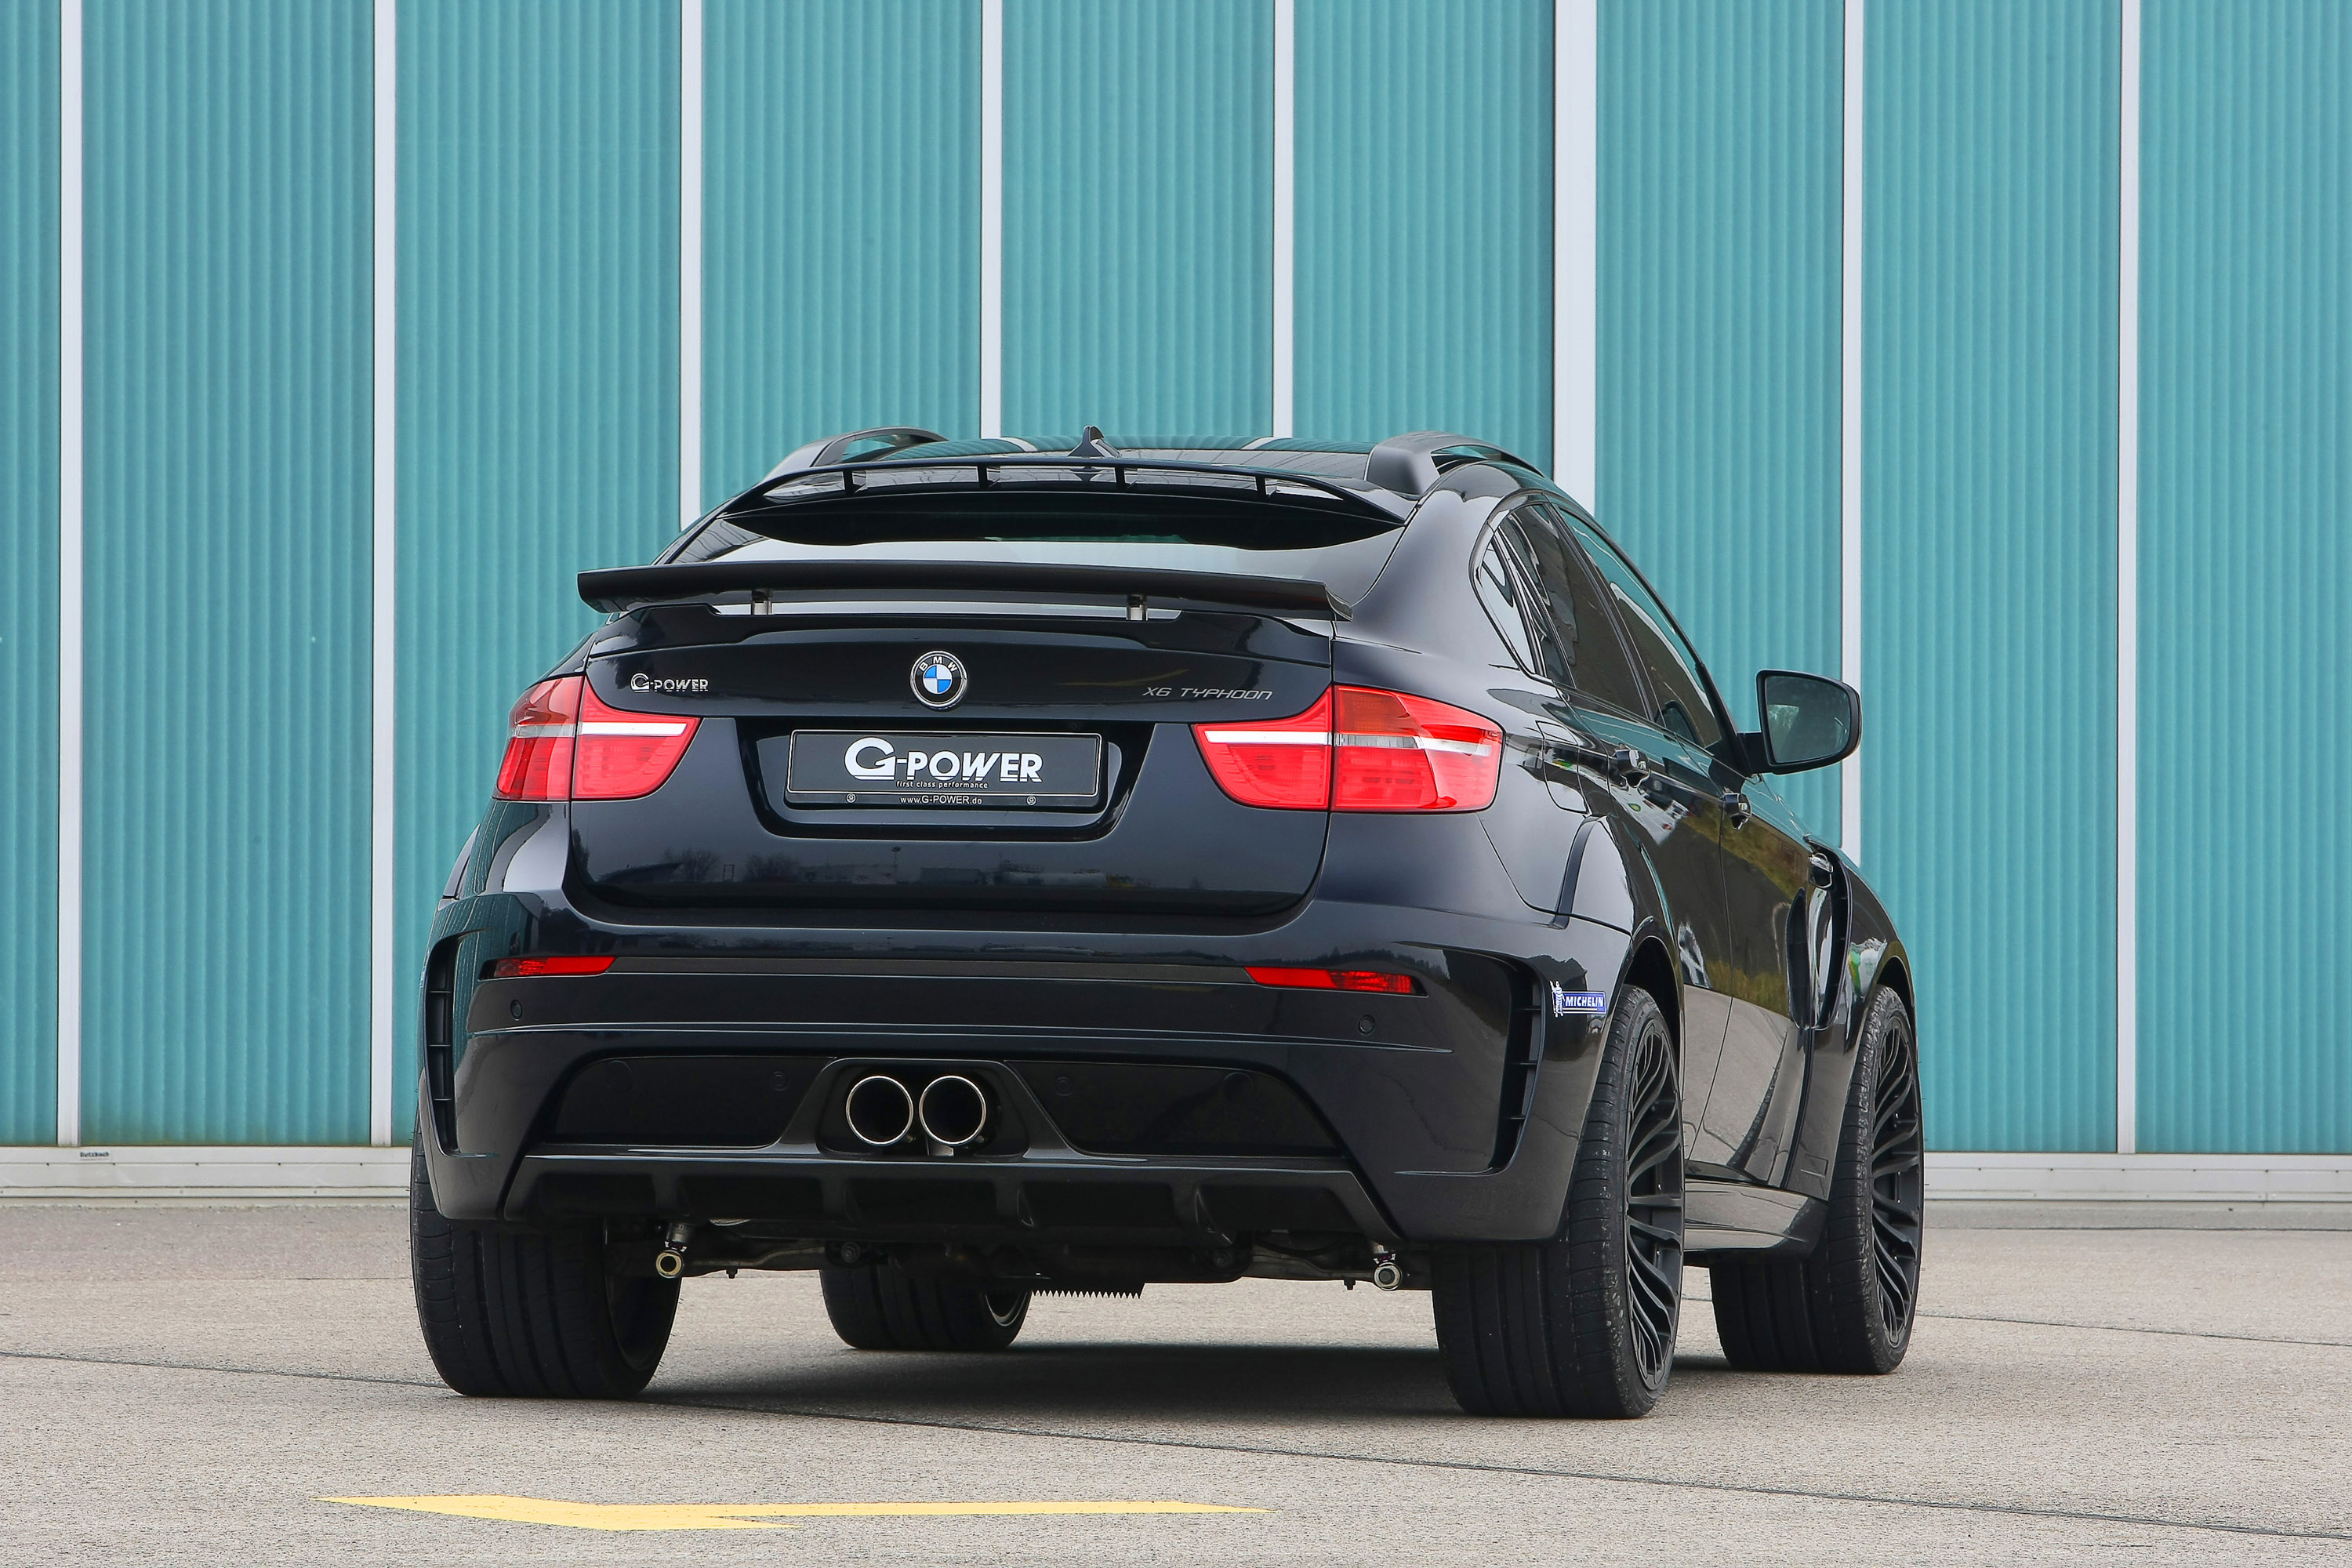 G Power Bmw X6 M Typhoon Wide Body Picture 61507